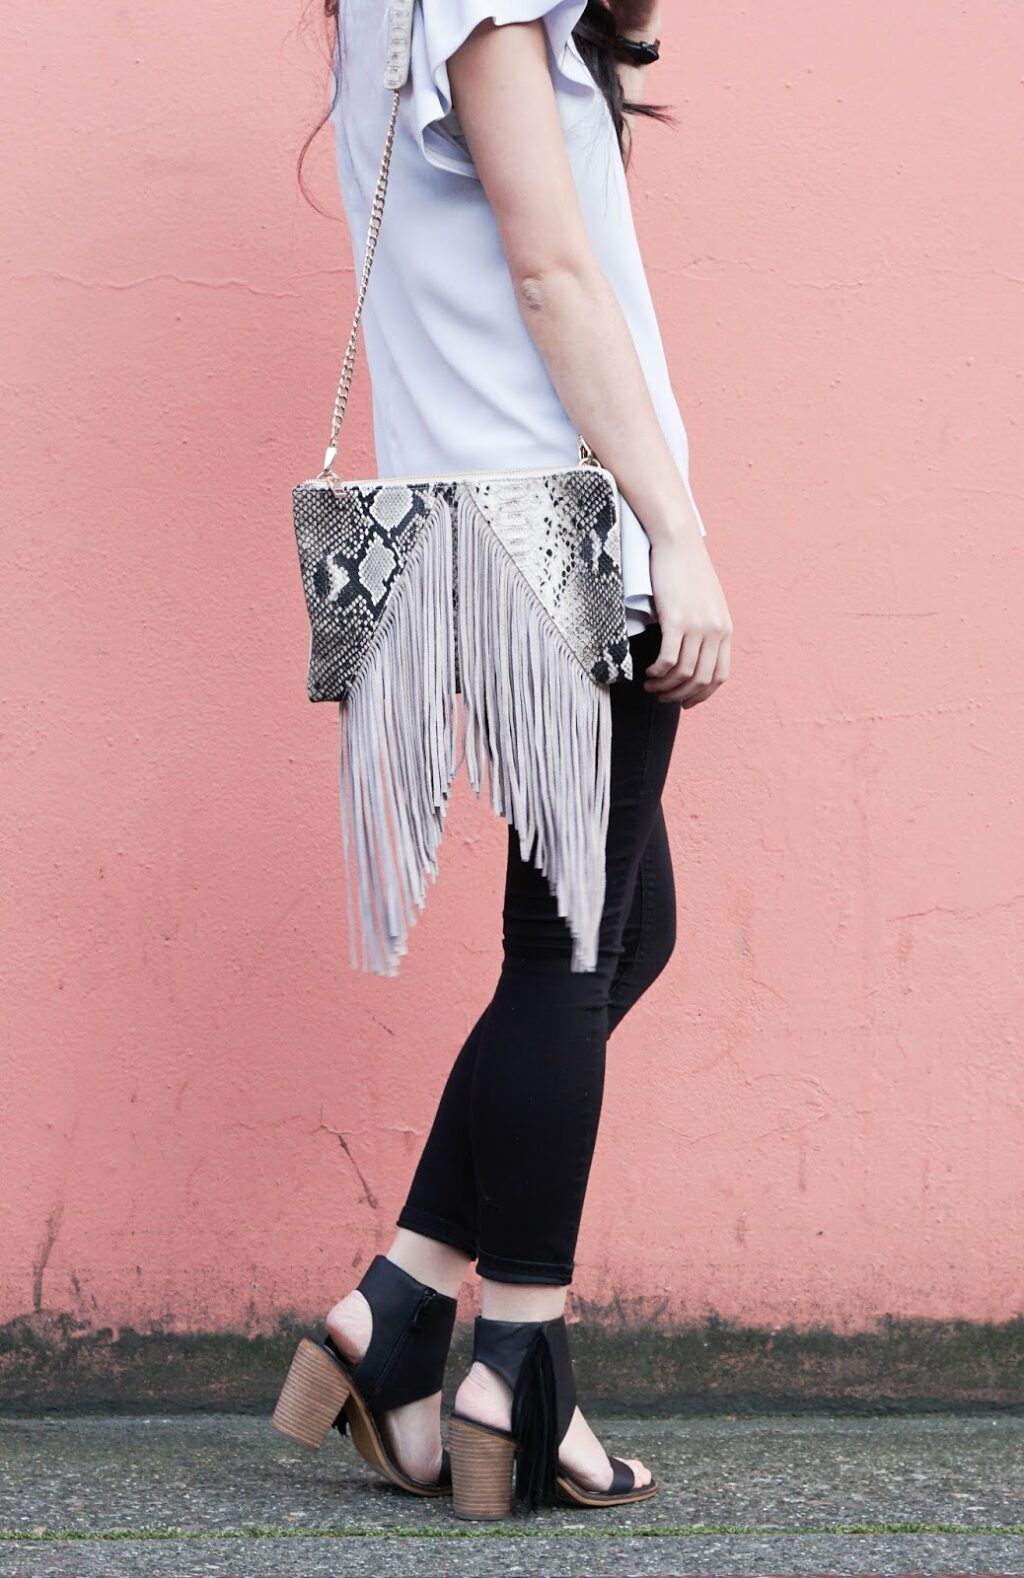 justatinabit-fringe-crossbody-bag-and-shoes-sandals-fashion